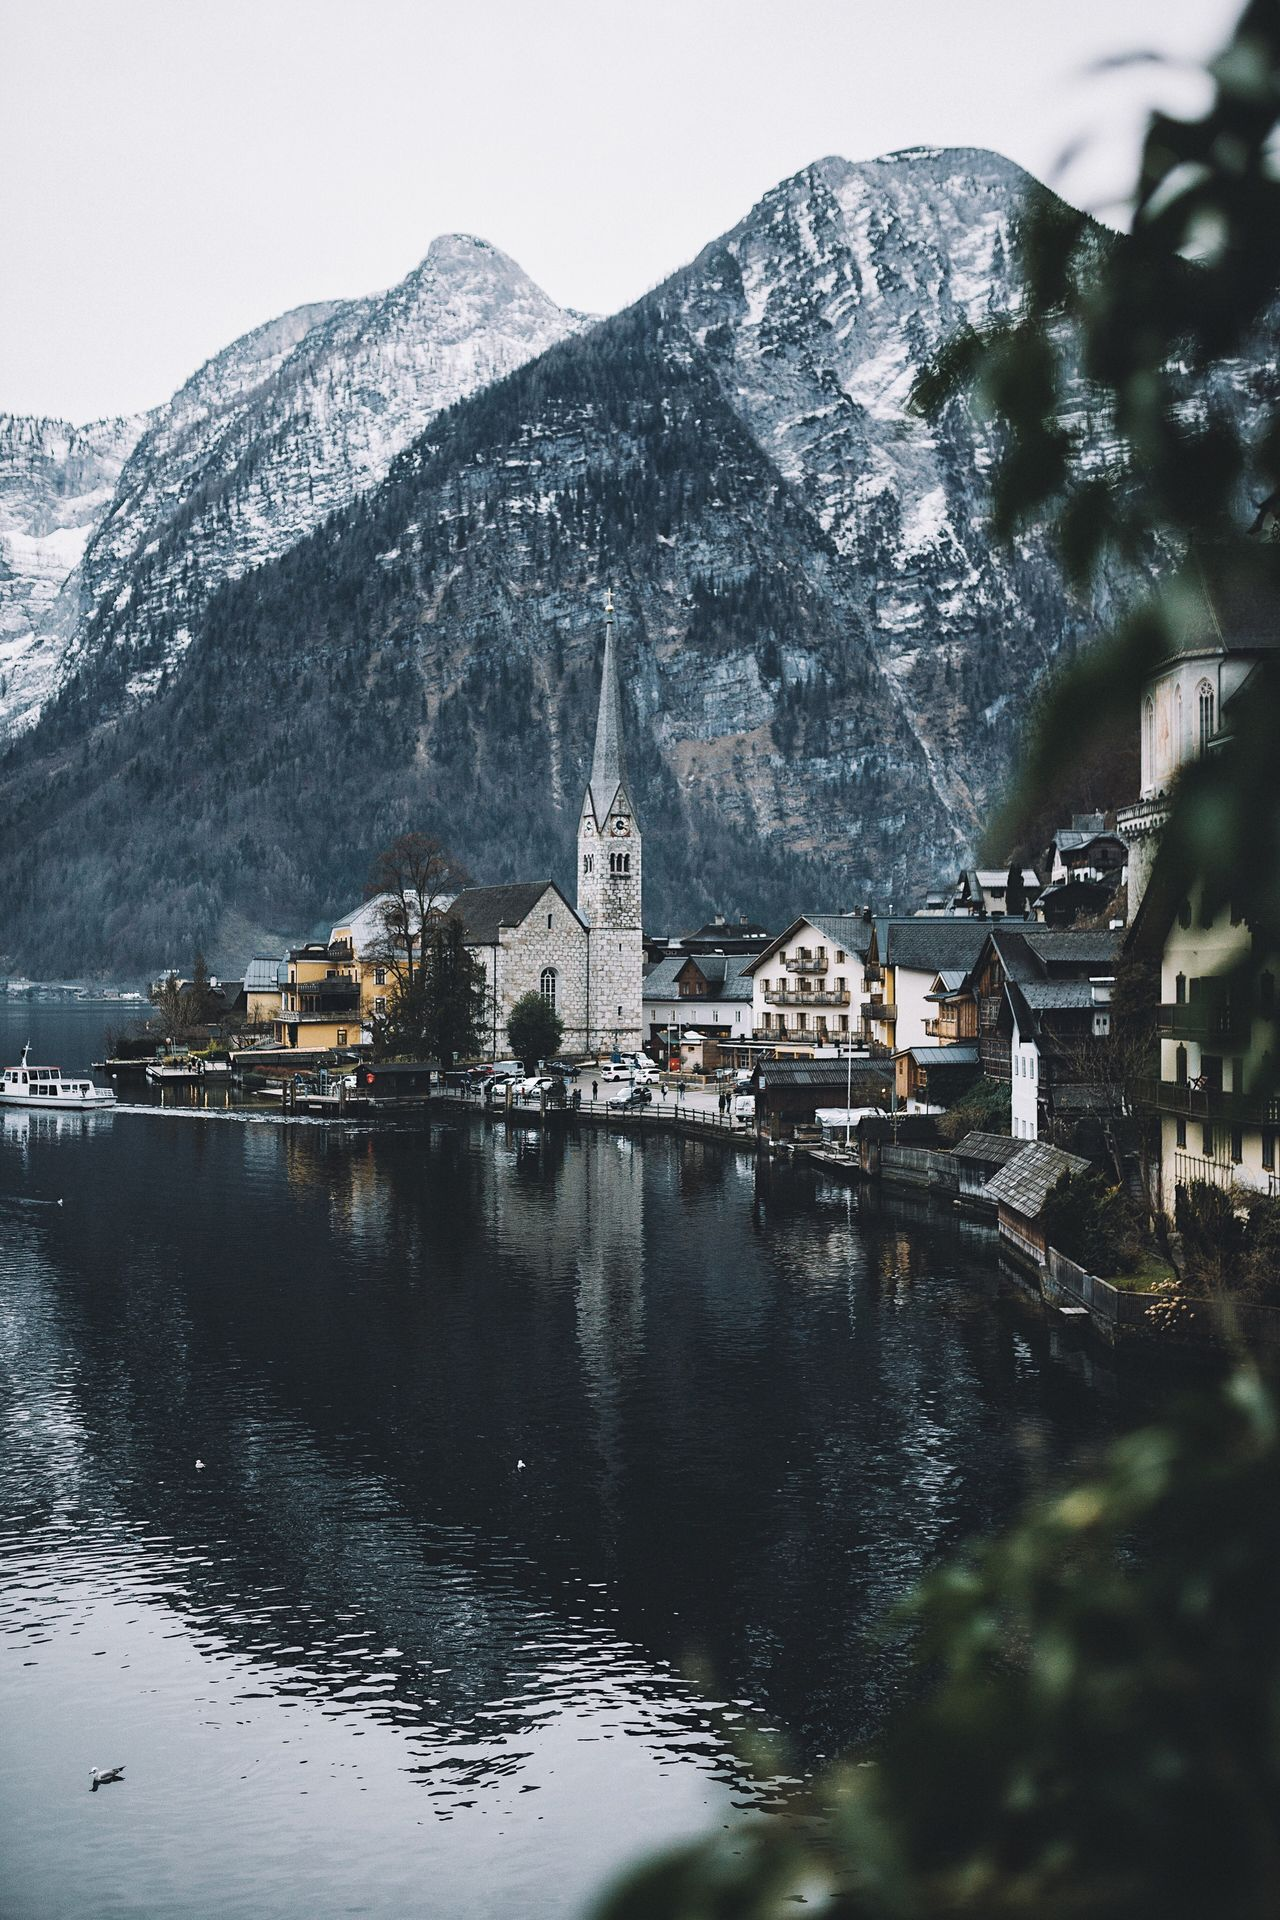 Hallstatt evenings. Austria Hallstatt Vscofilm Architecture Mountain Built Structure Mountain Range Building Exterior Water Reflection Sky Religion Travel Destinations No People River Outdoors Waterfront Place Of Worship Nature Bridge - Man Made Structure Day